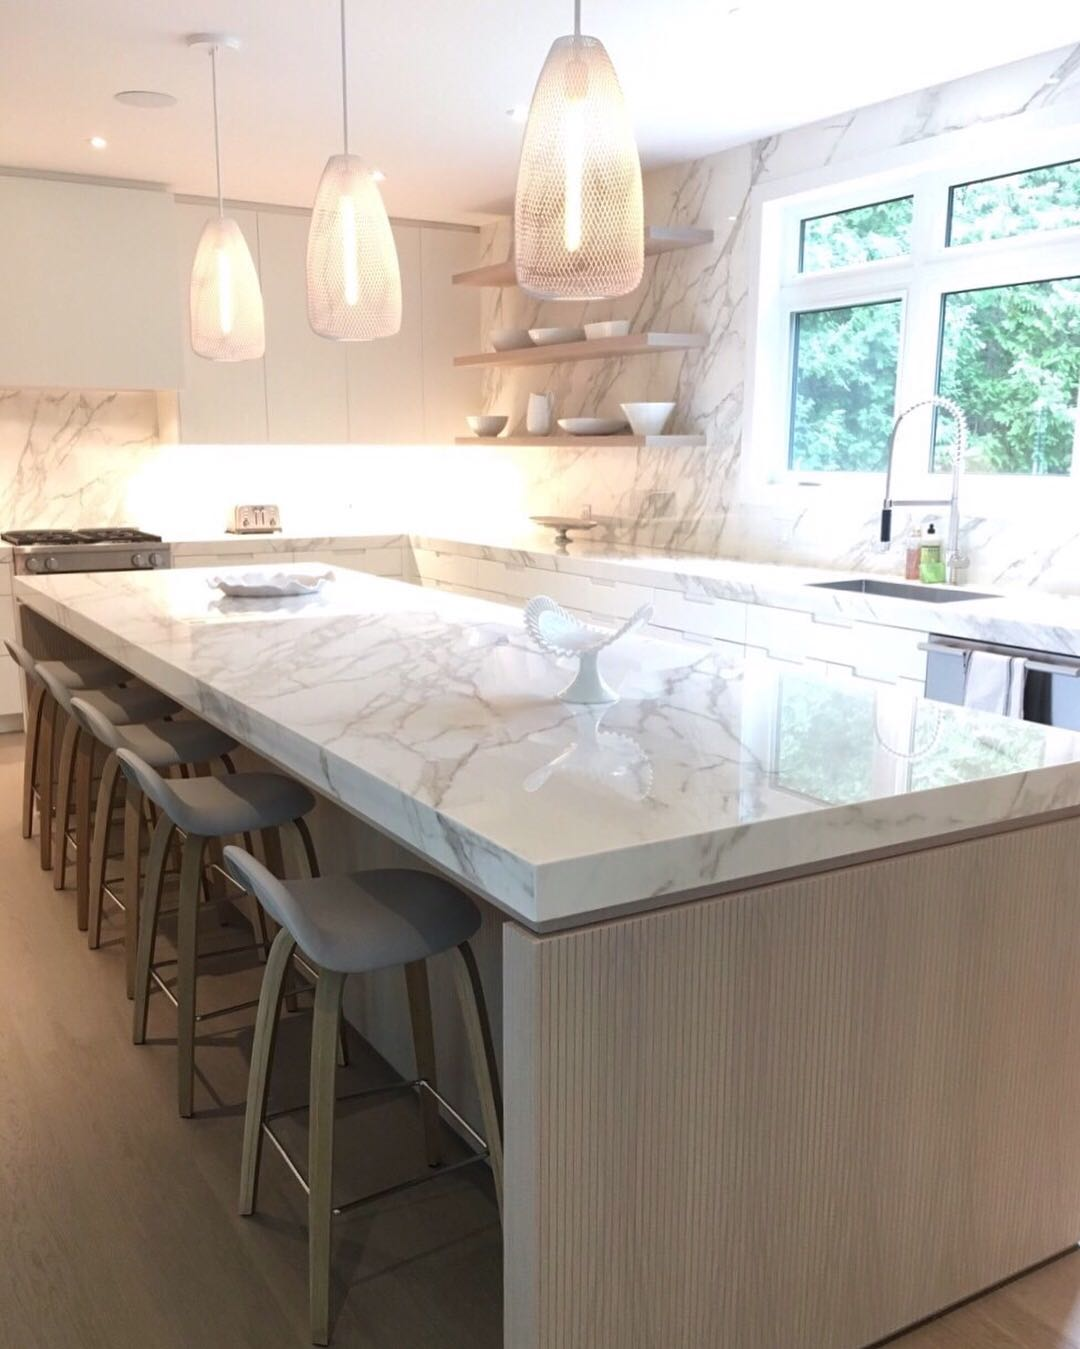 Kitchen Neolith Calacatta Marble Trend Marble Granite Tiles Toronto Ontario Marble Trend Marble Granite Tiles Toronto Ontario